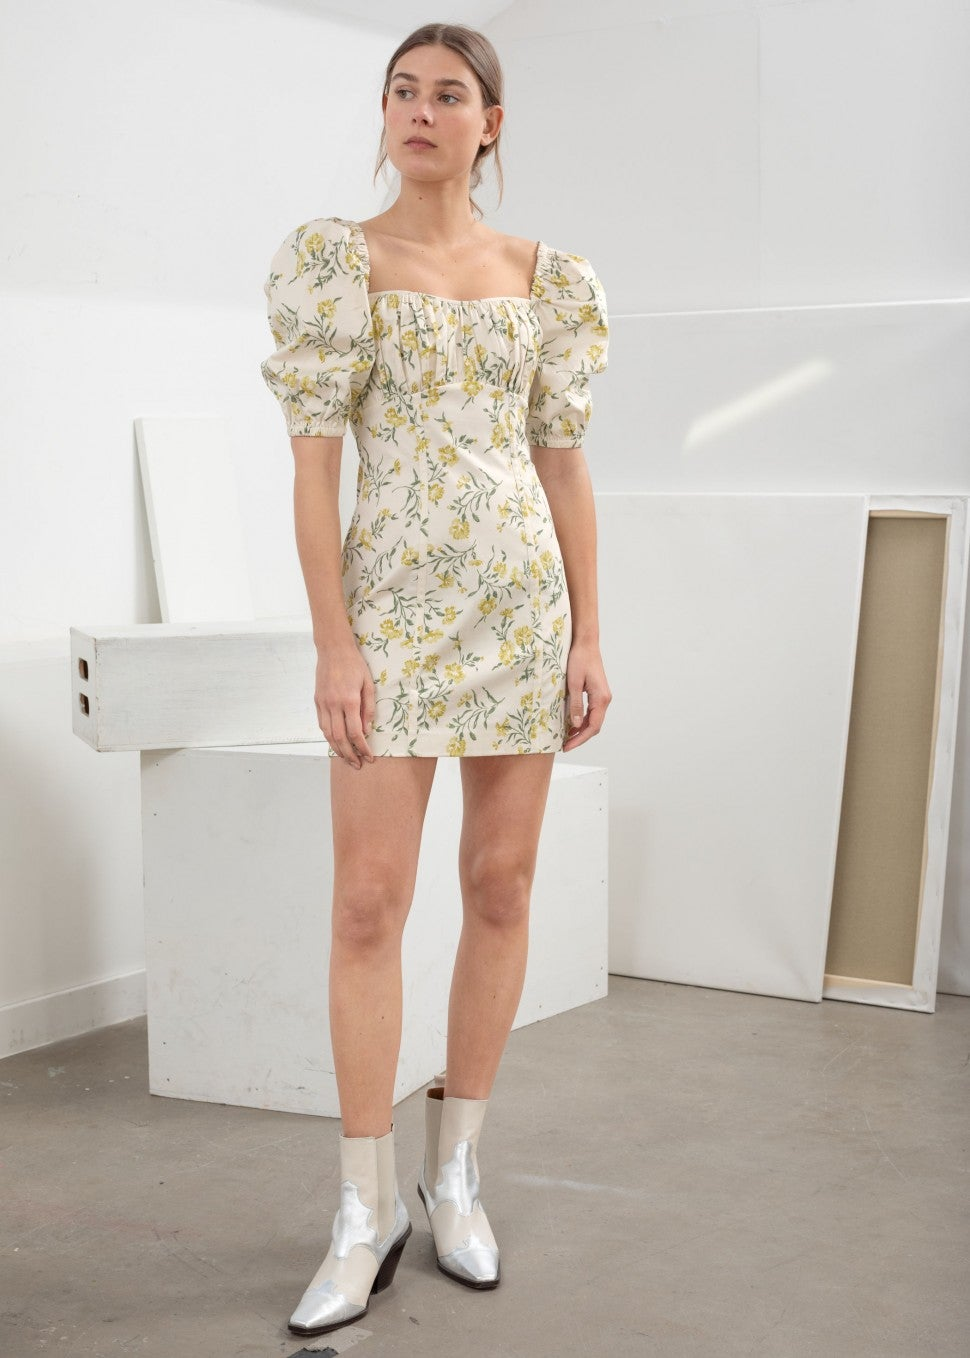 & Other Stories puff shoulder dress